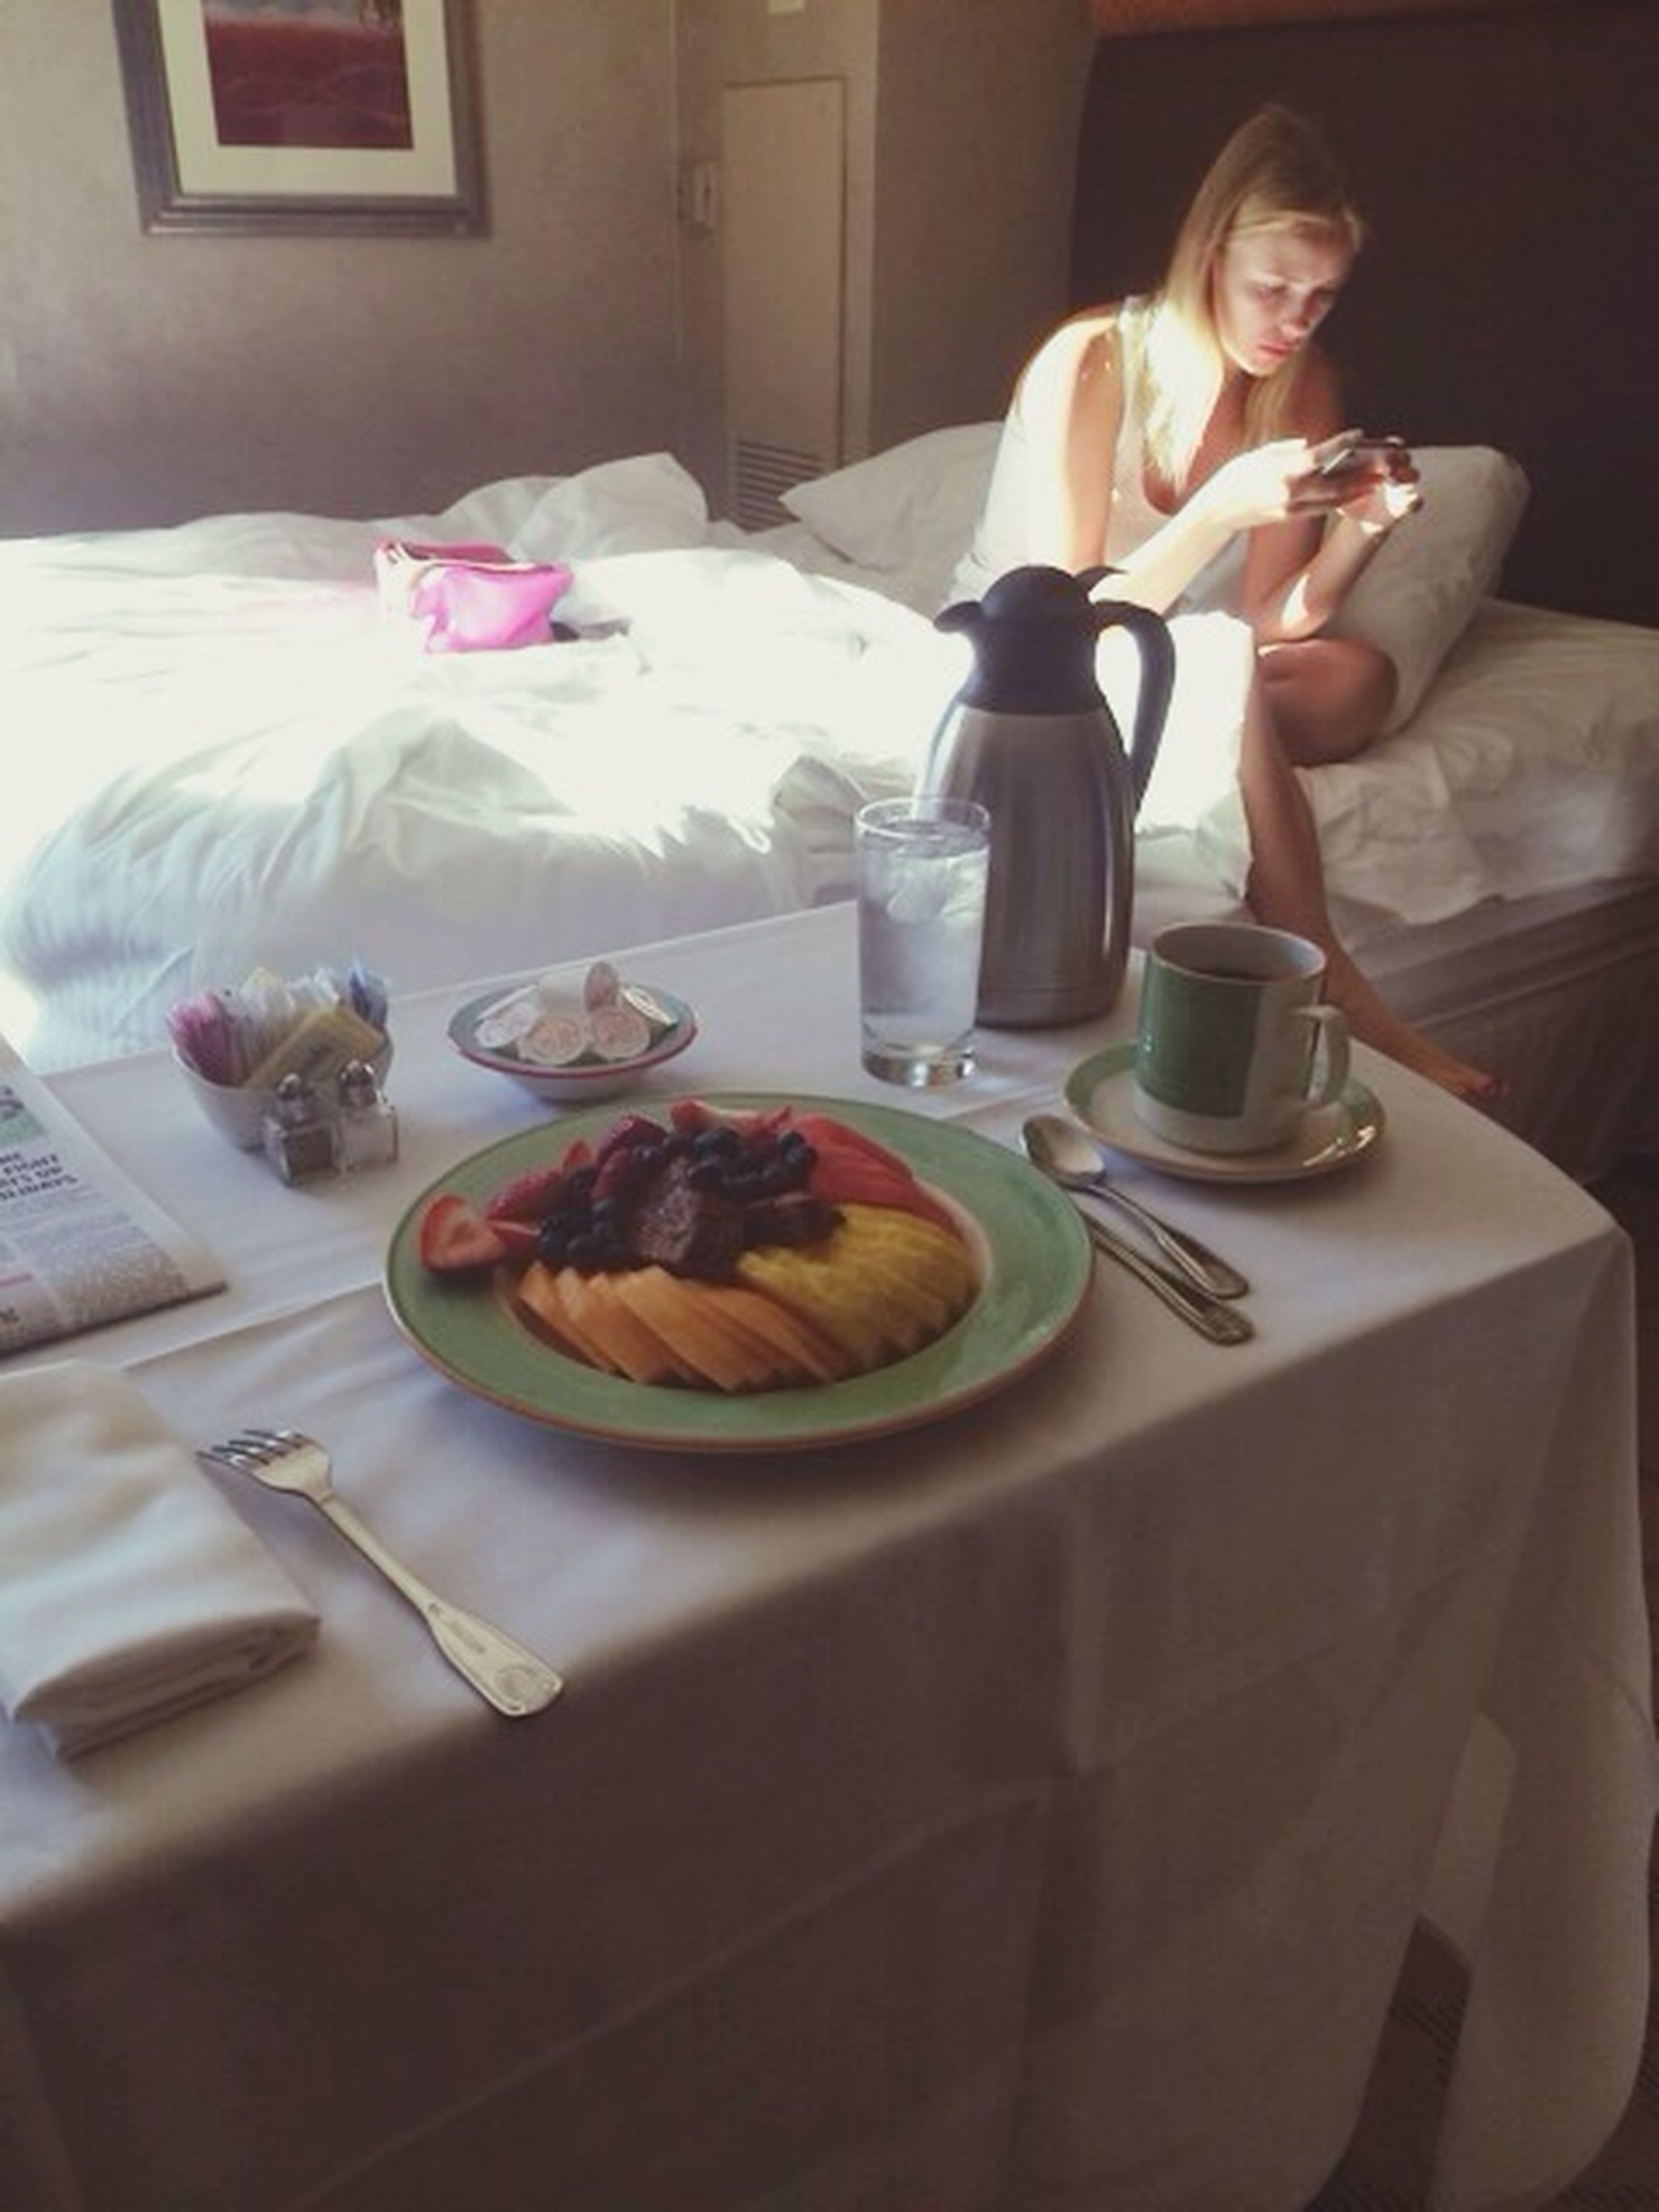 indoors, food and drink, table, food, freshness, plate, still life, fork, ready-to-eat, drink, breakfast, refreshment, coffee cup, healthy eating, spoon, indulgence, drinking glass, table knife, sweet food, high angle view